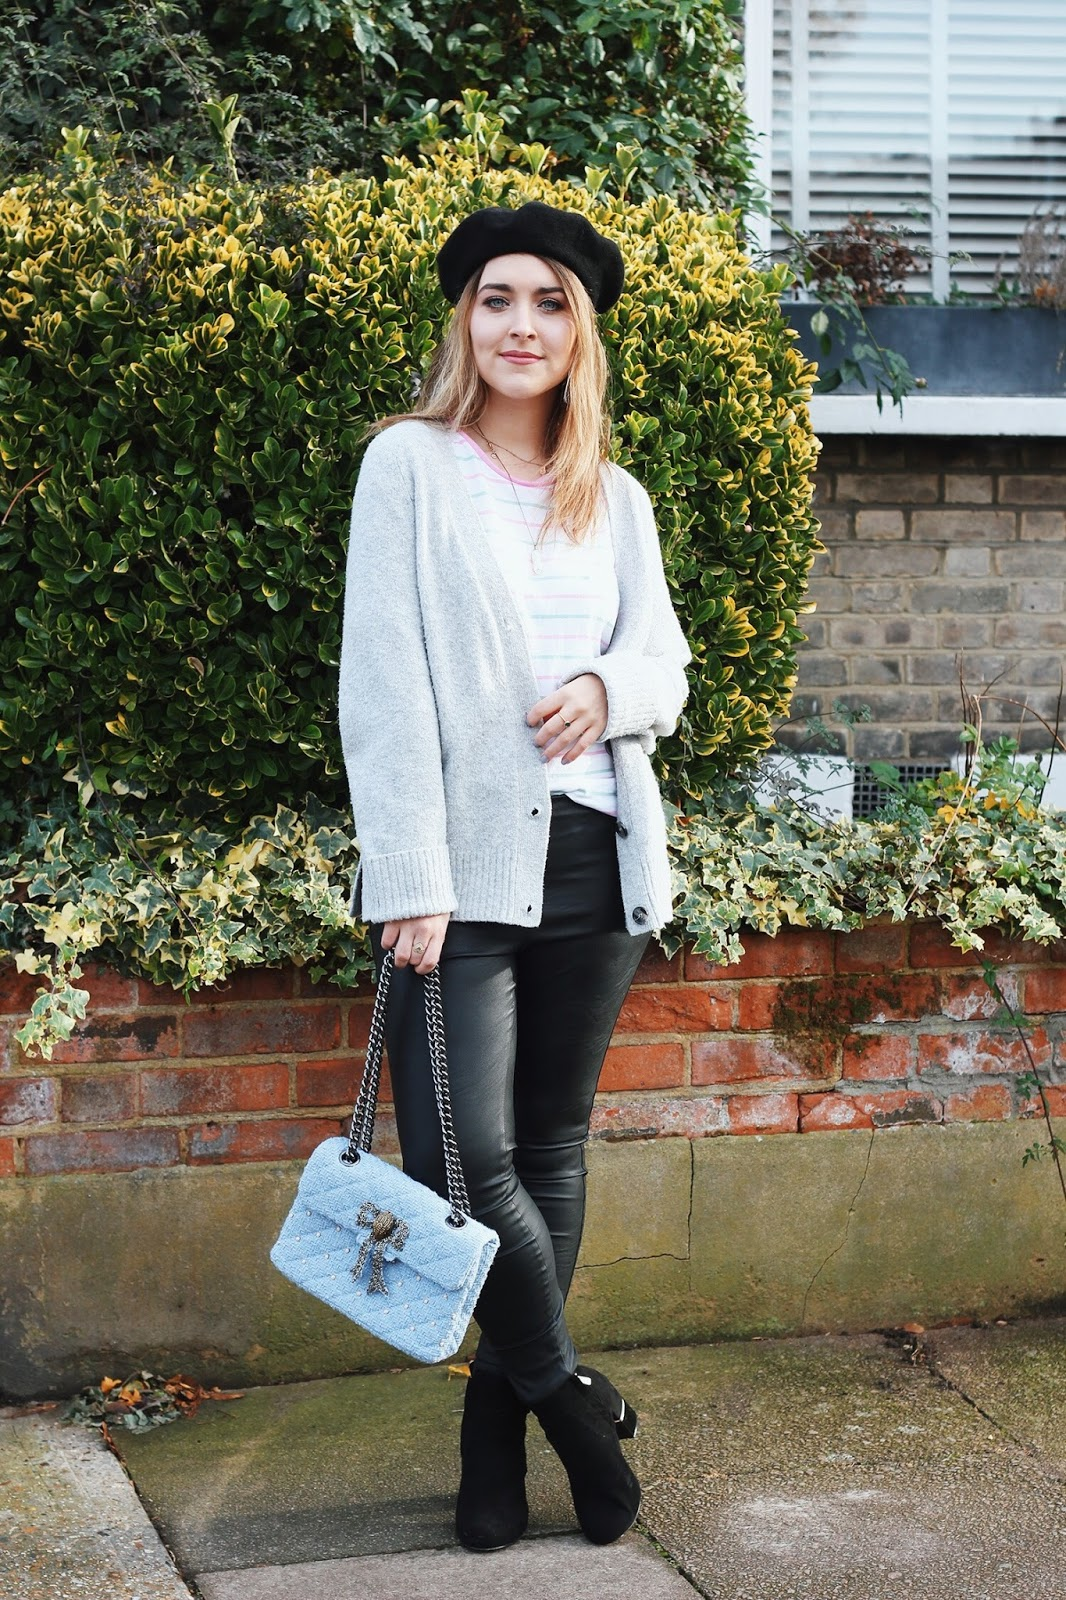 UK Fashion bloggers